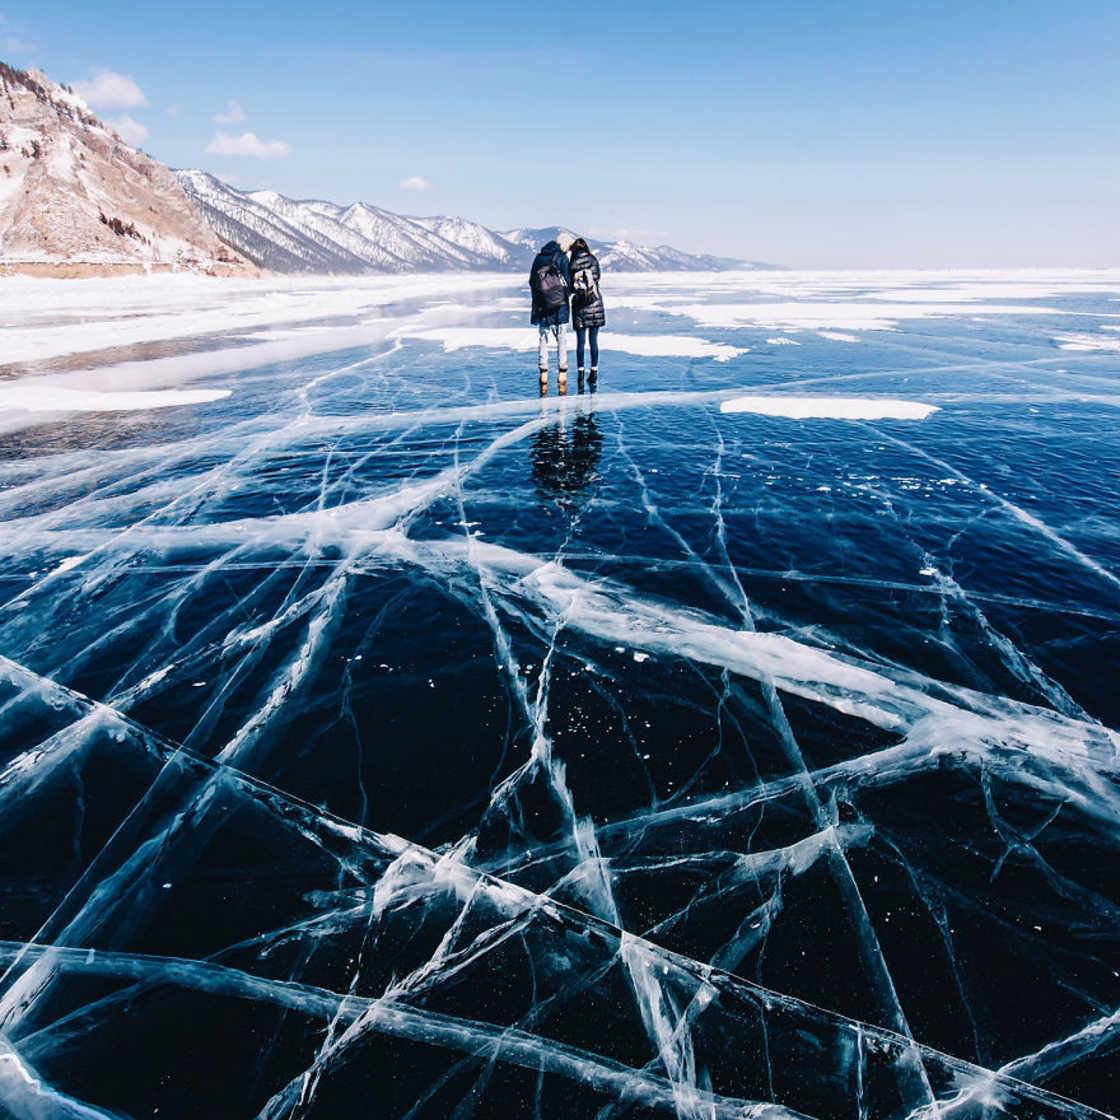 Frozen World – The impressive photos of Lake Baikal during winter